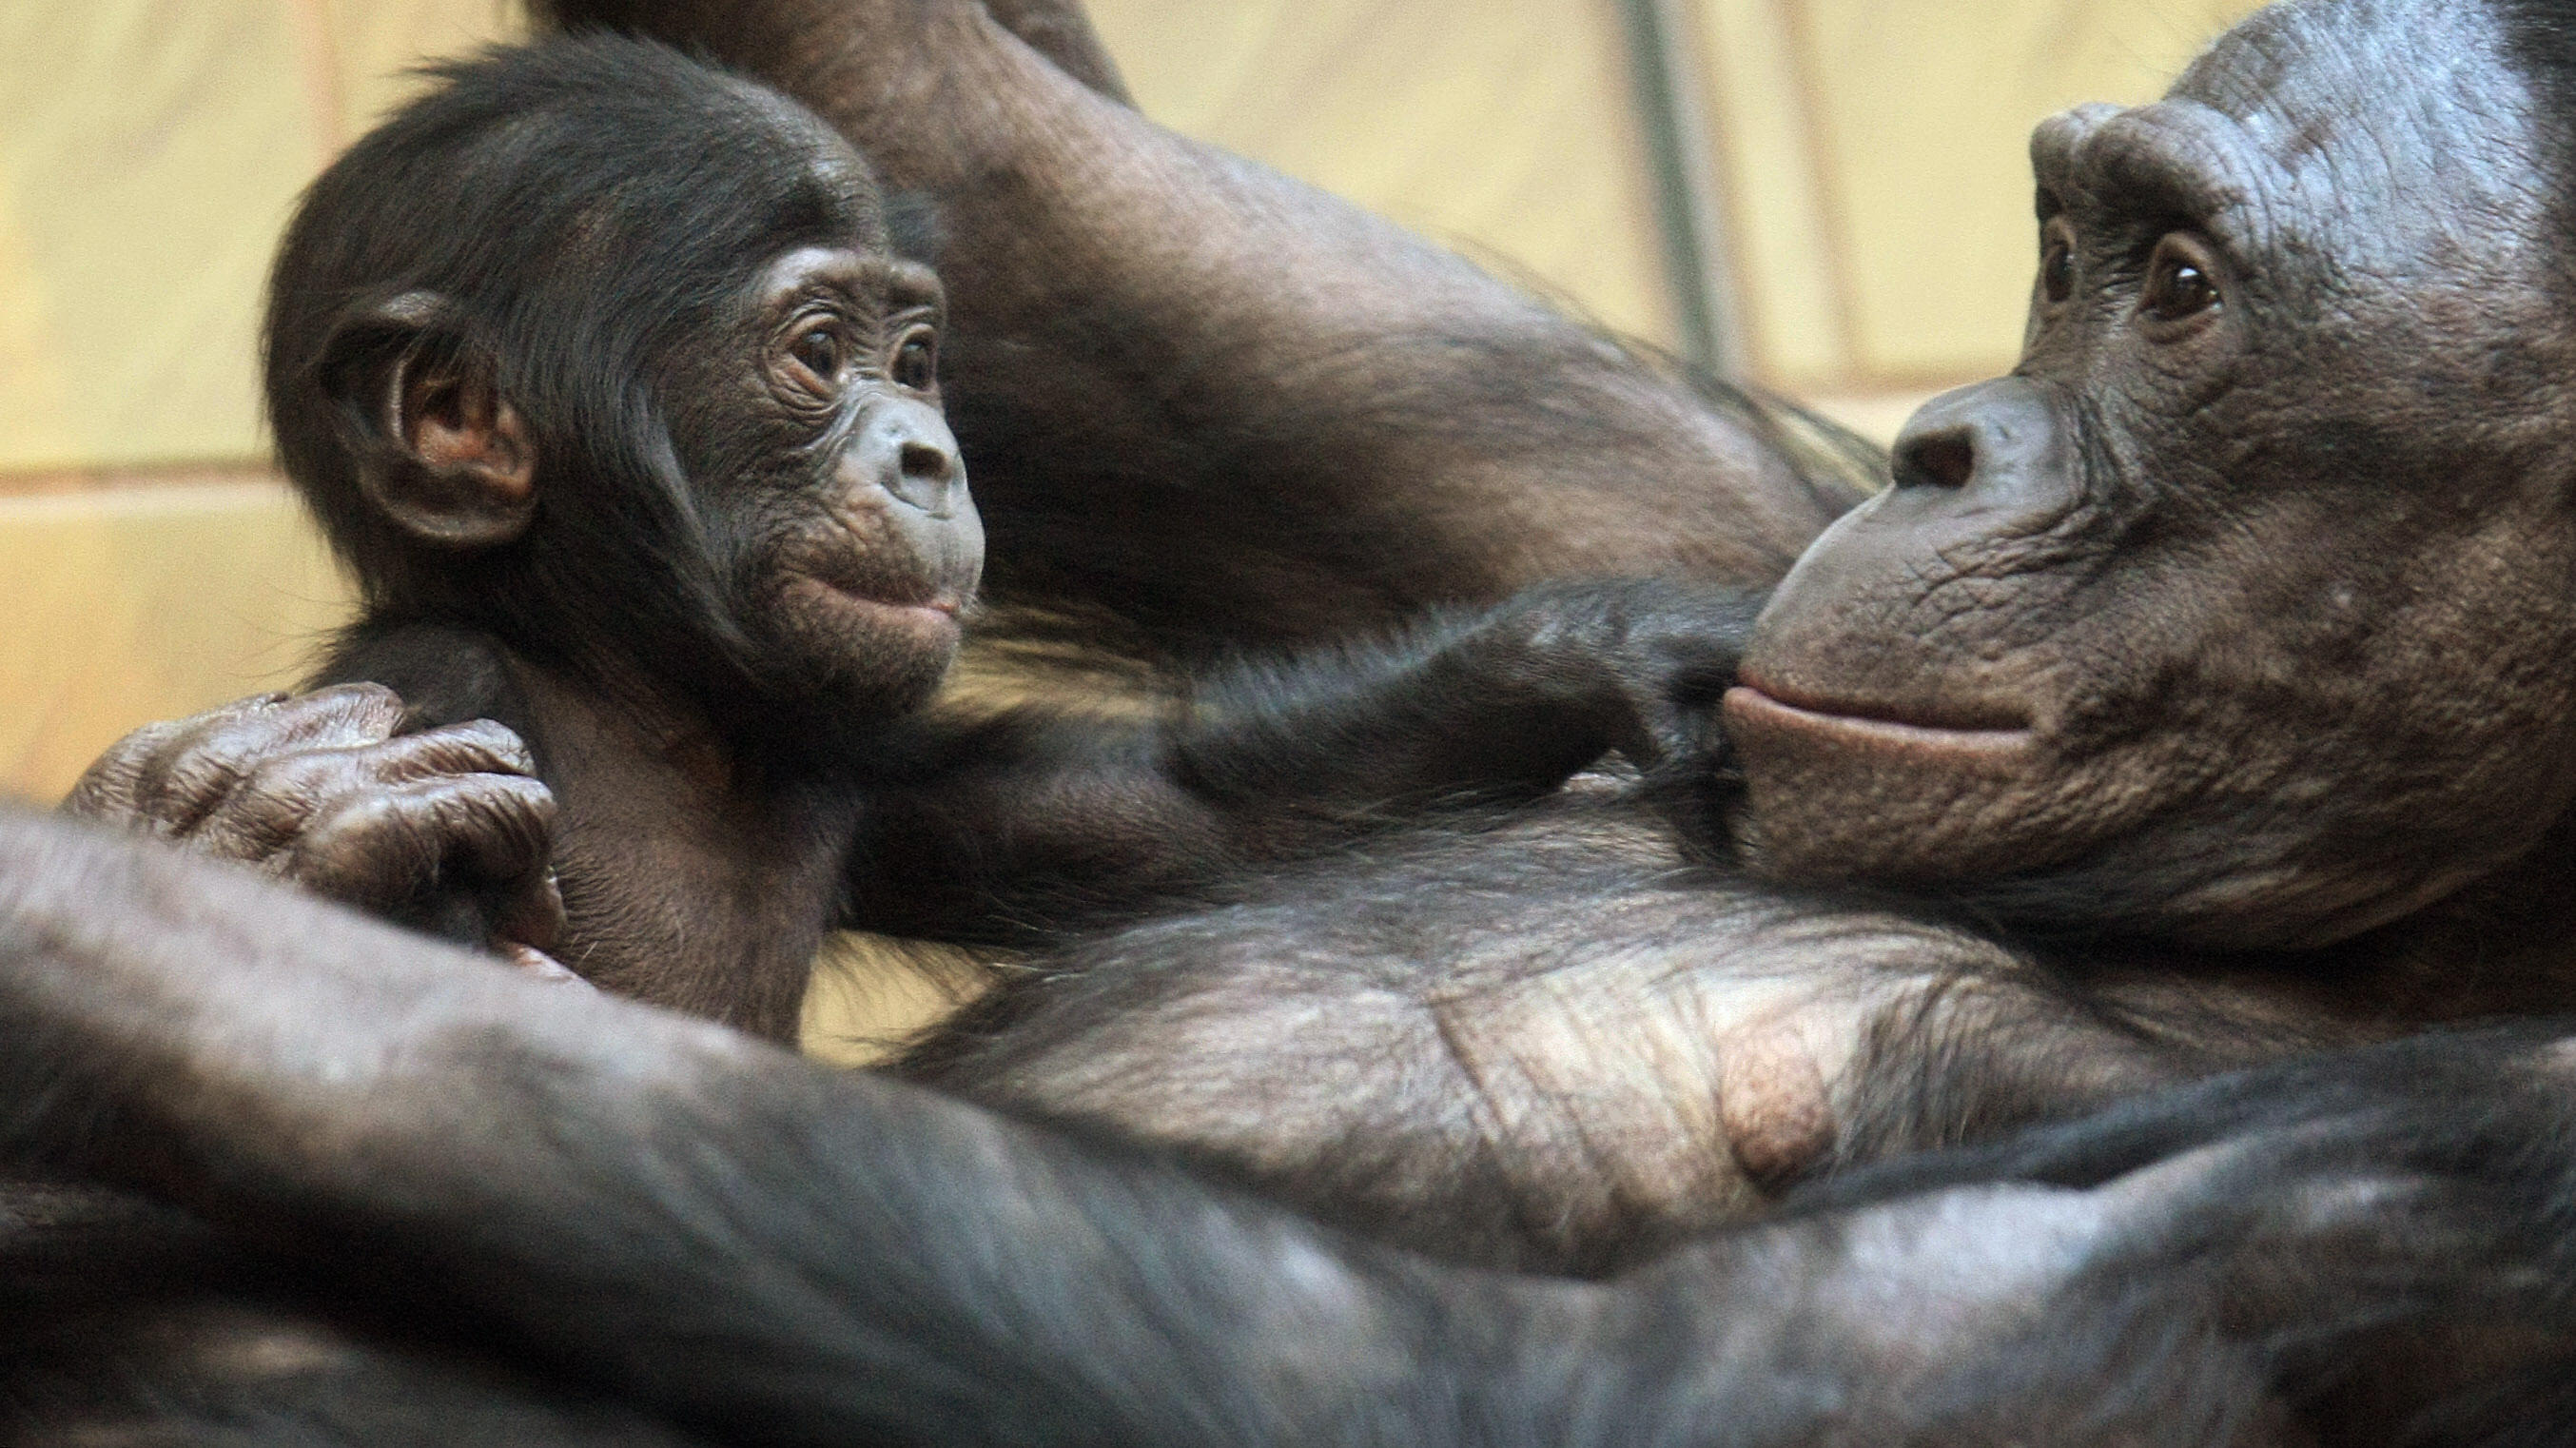 Savage-Rumbaugh's work with bonobo apes, which can understand spoken language and learn tasks by watching, forces the audience to rethink how much of what a species can do is determined by biology -- and how much by cultural exposure.